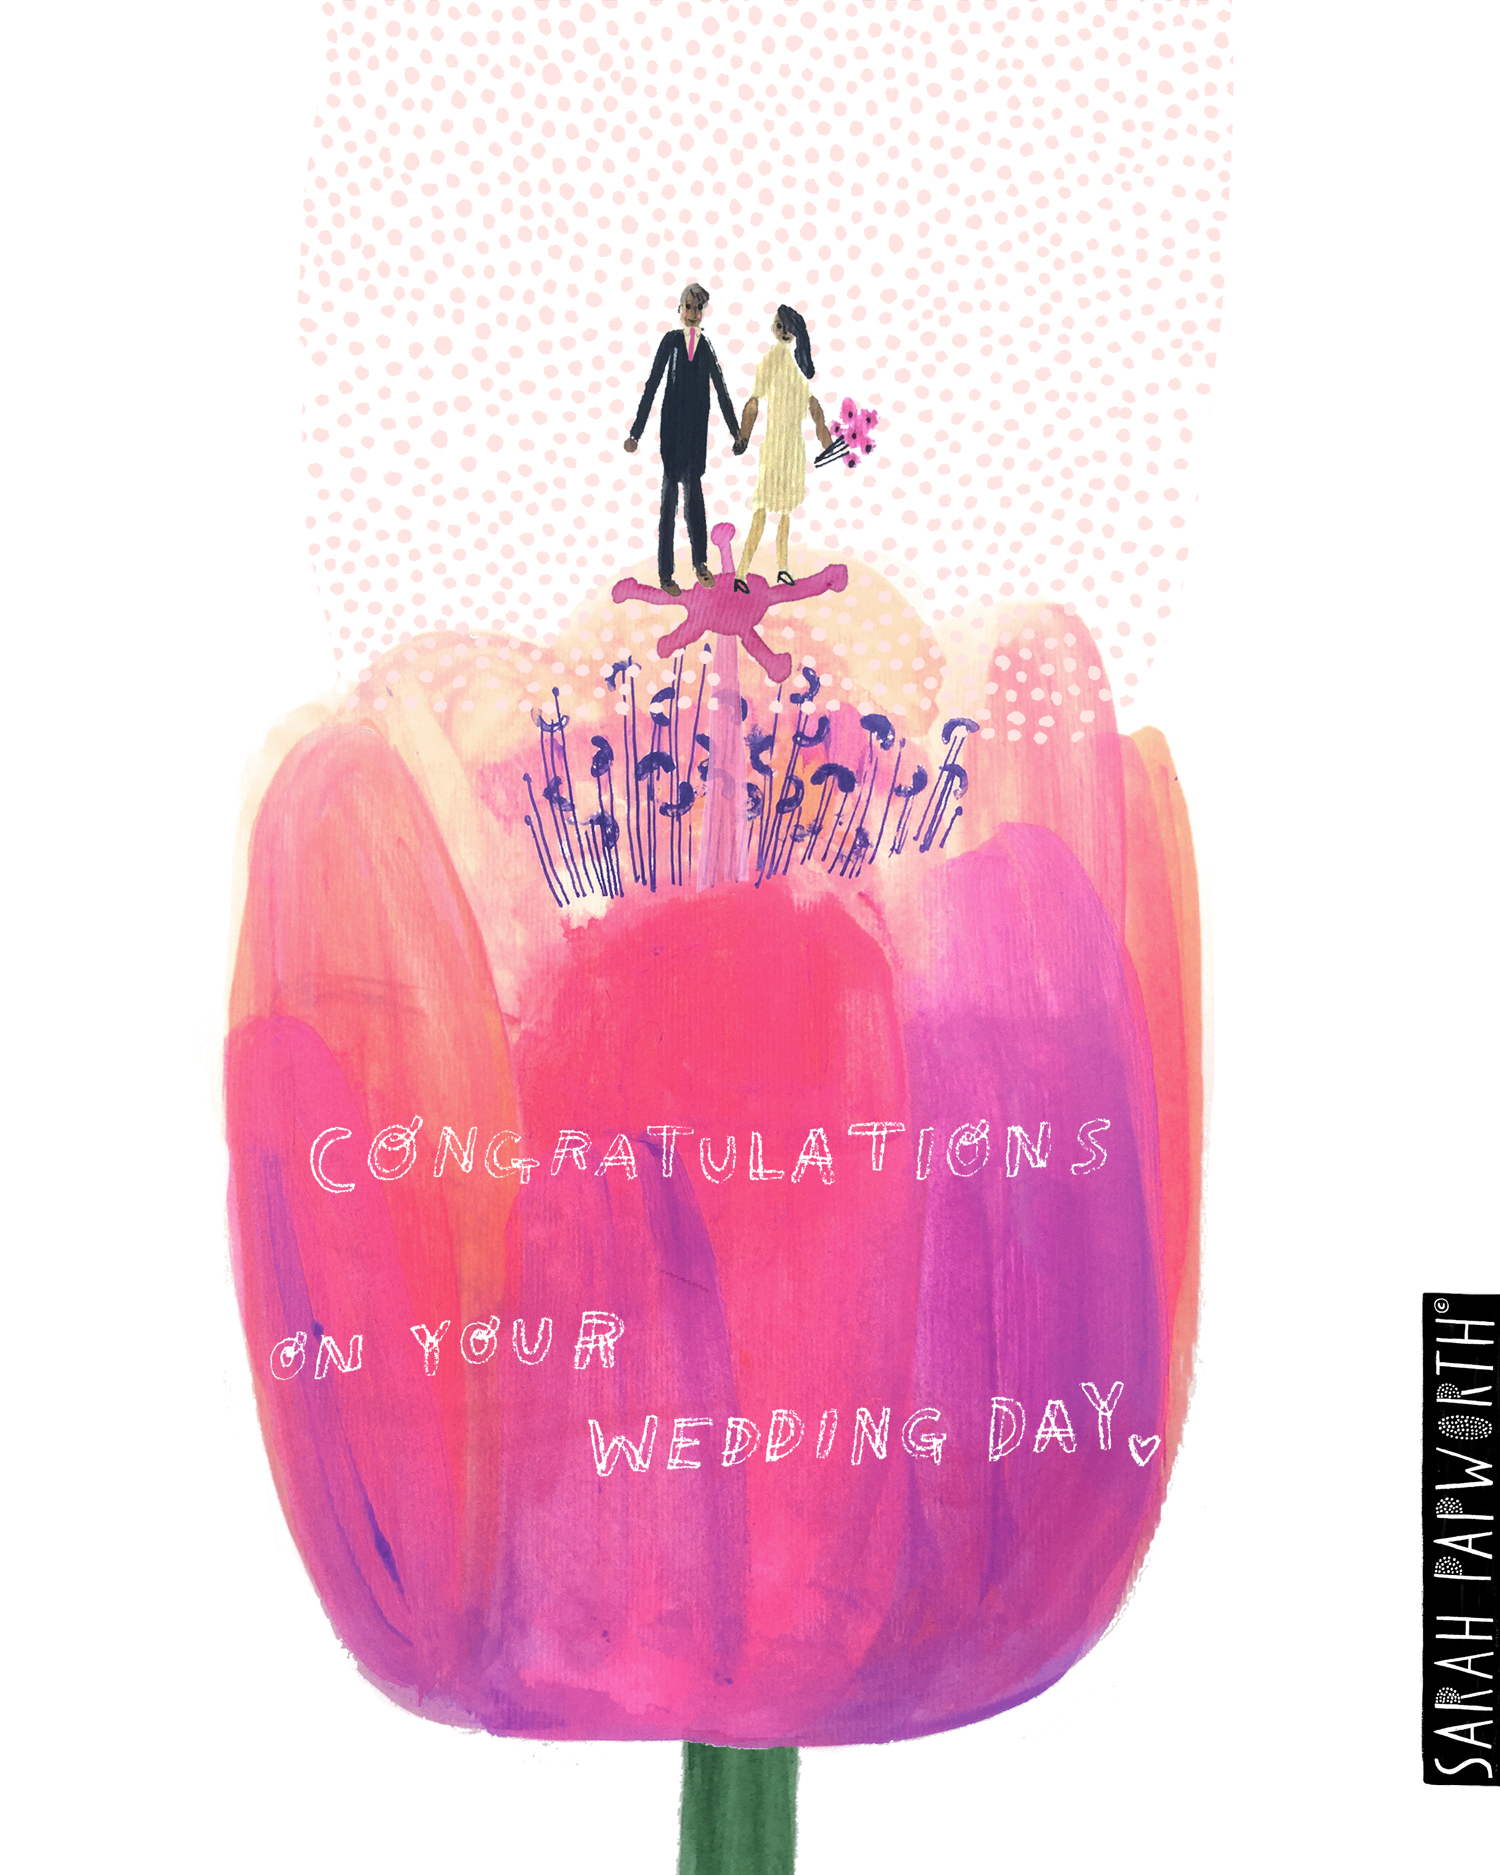 wedding day flower greeting occasion card sarah papworth.jpg